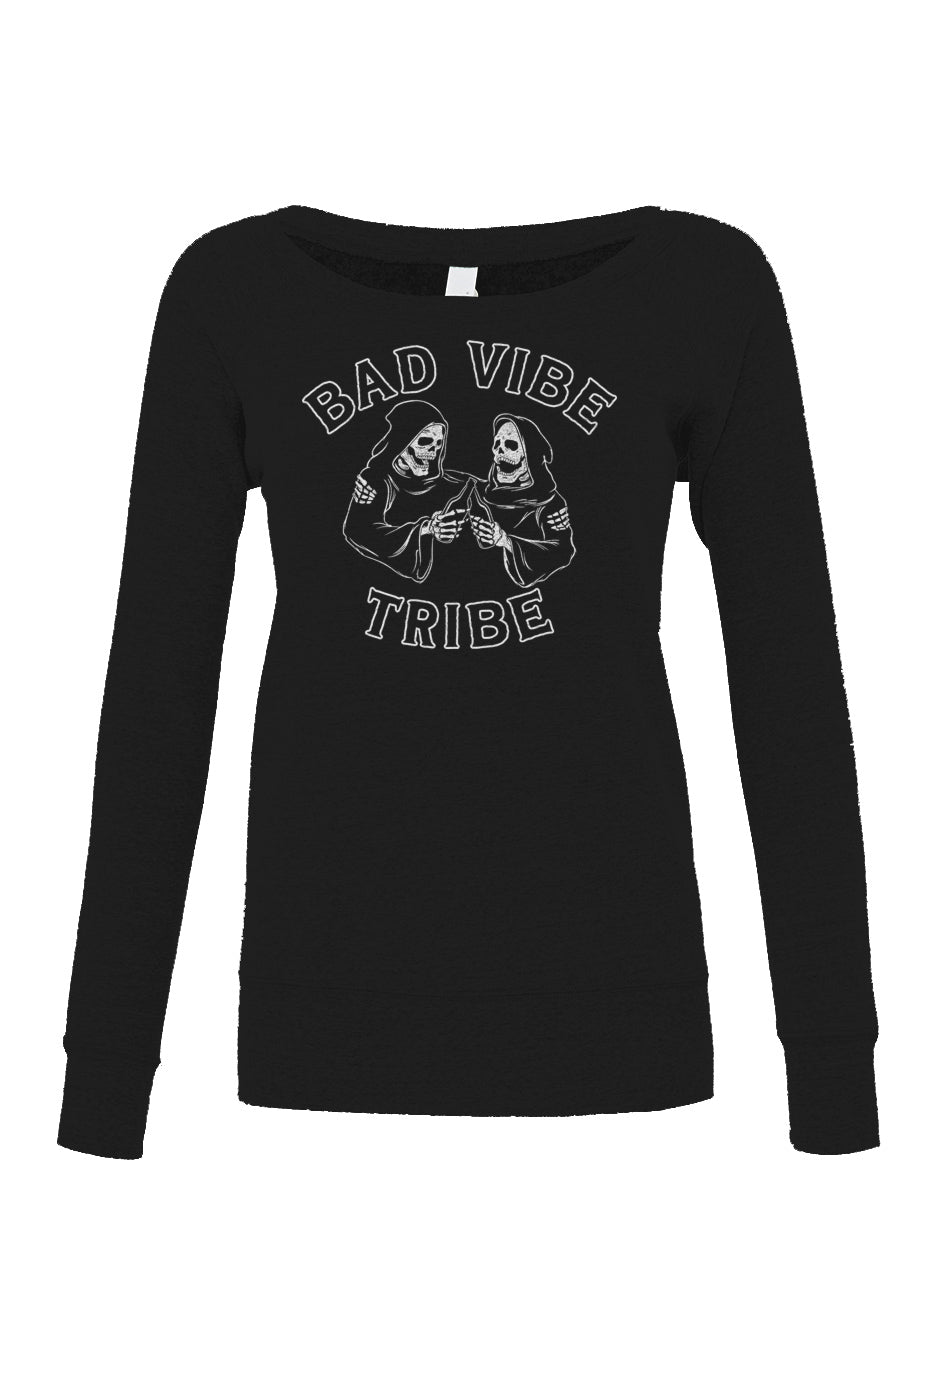 Women's Bad Vibe Tribe Scoop Neck Fleece